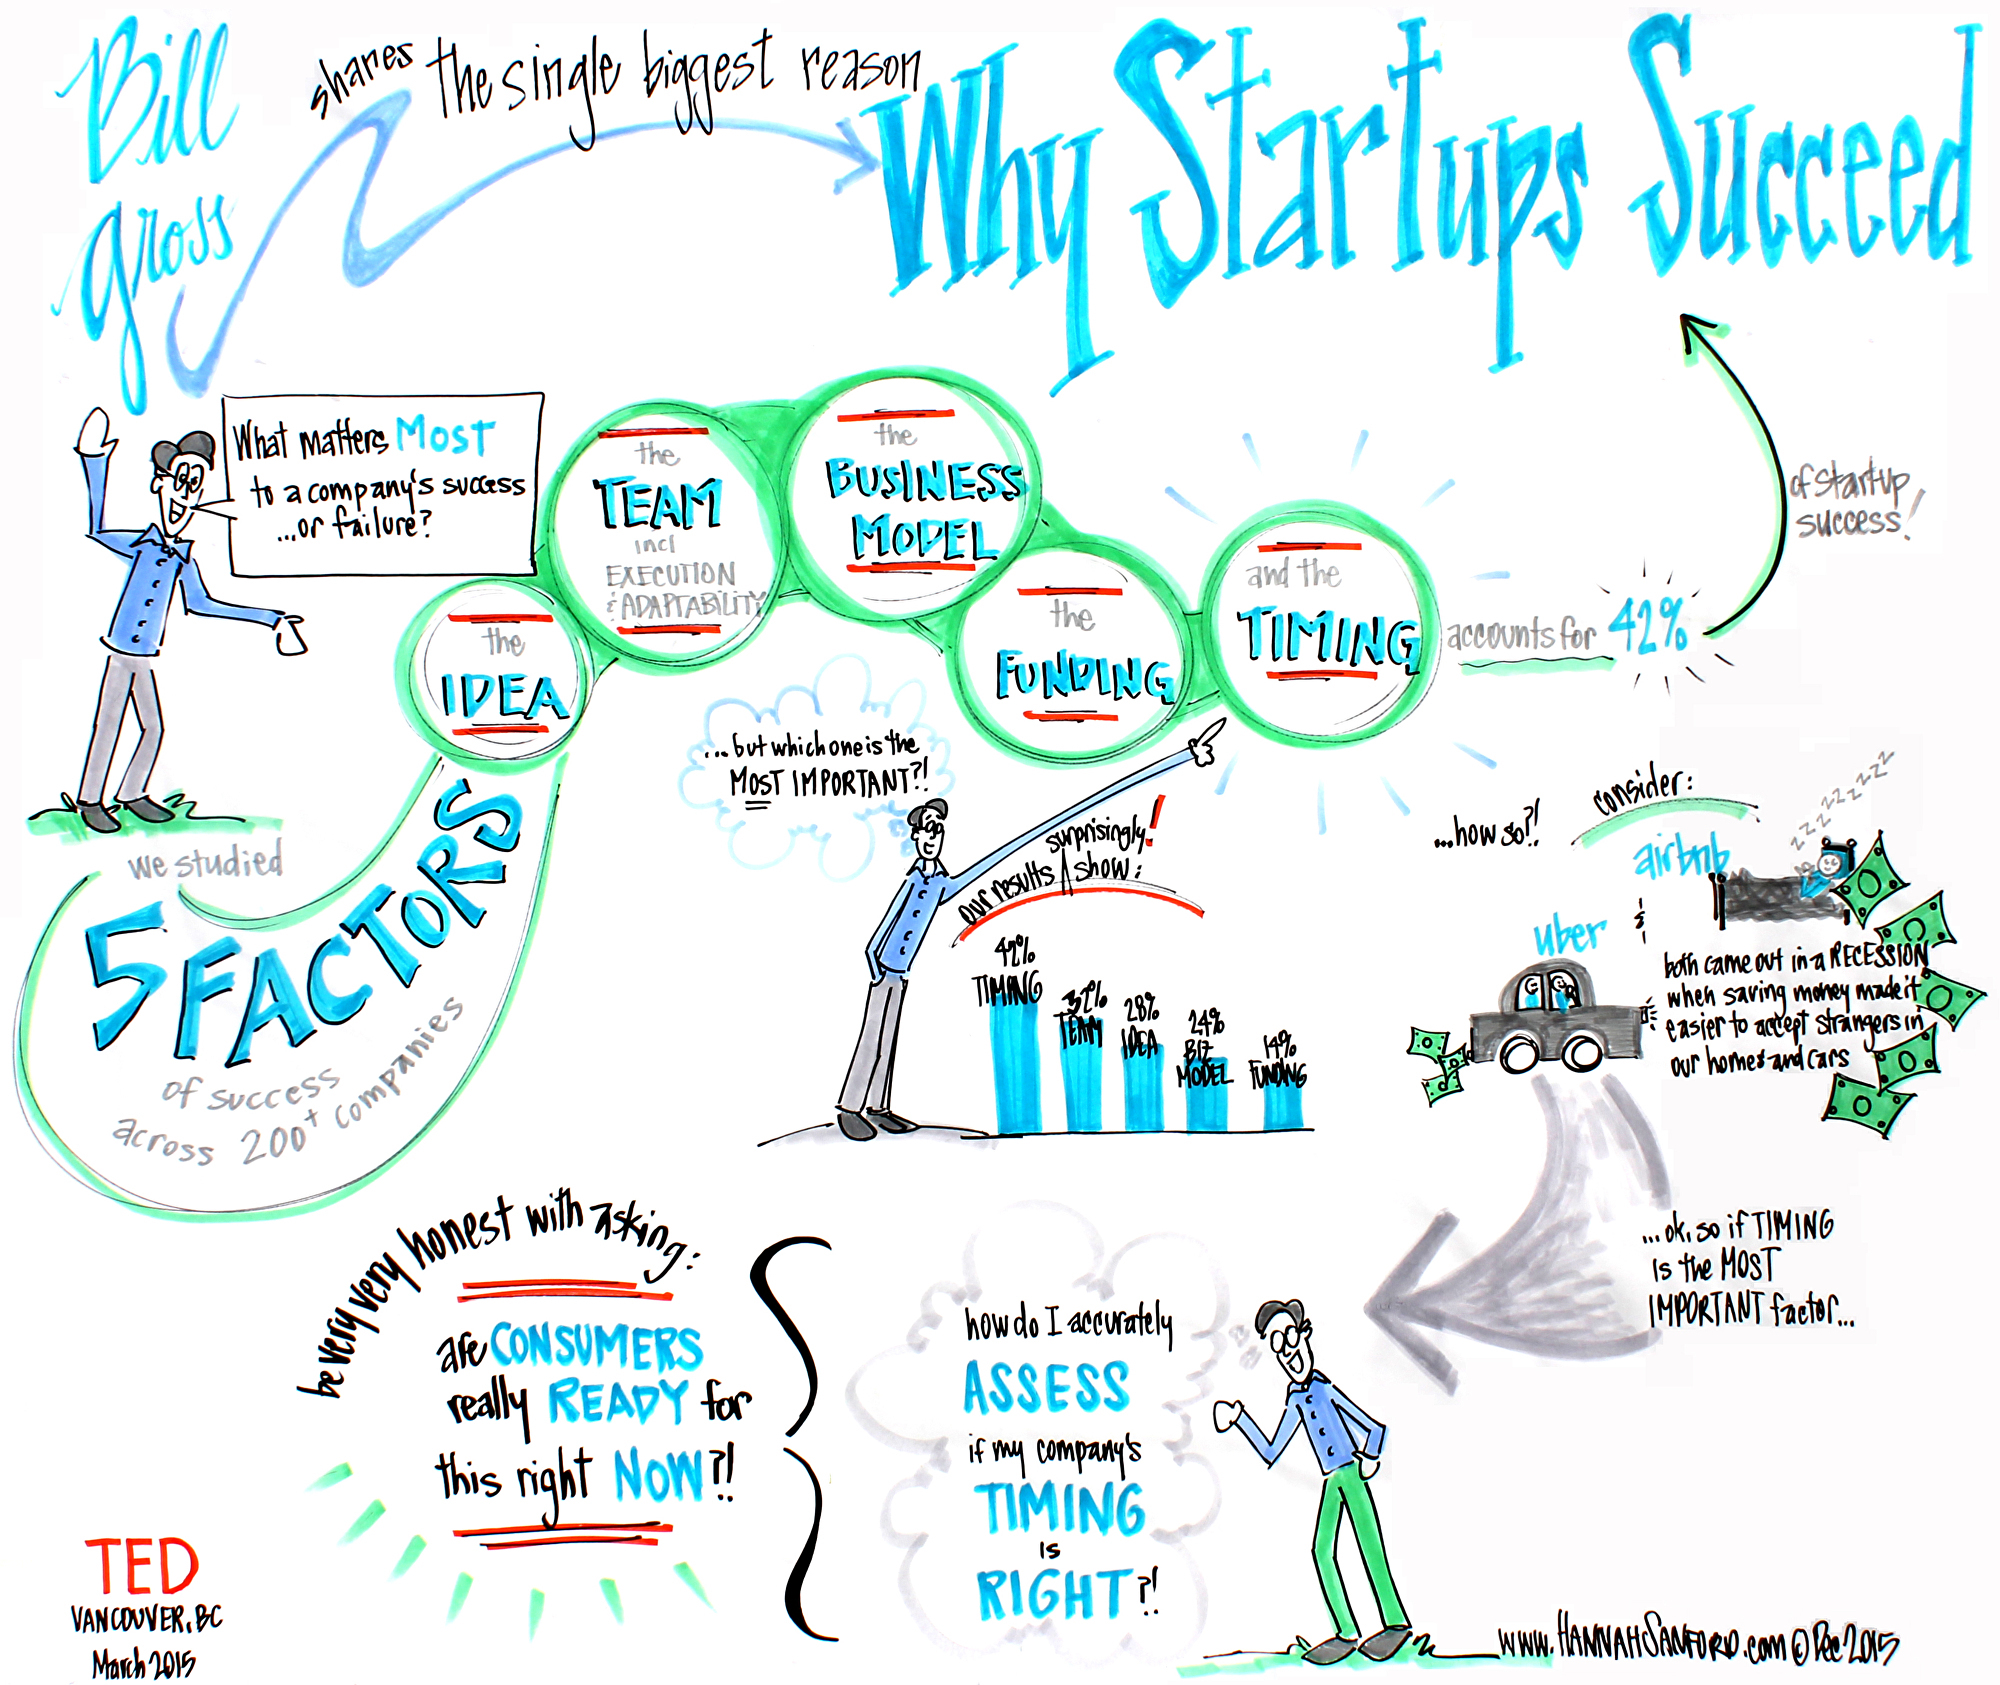 WHY STARTUPS SUCCEED